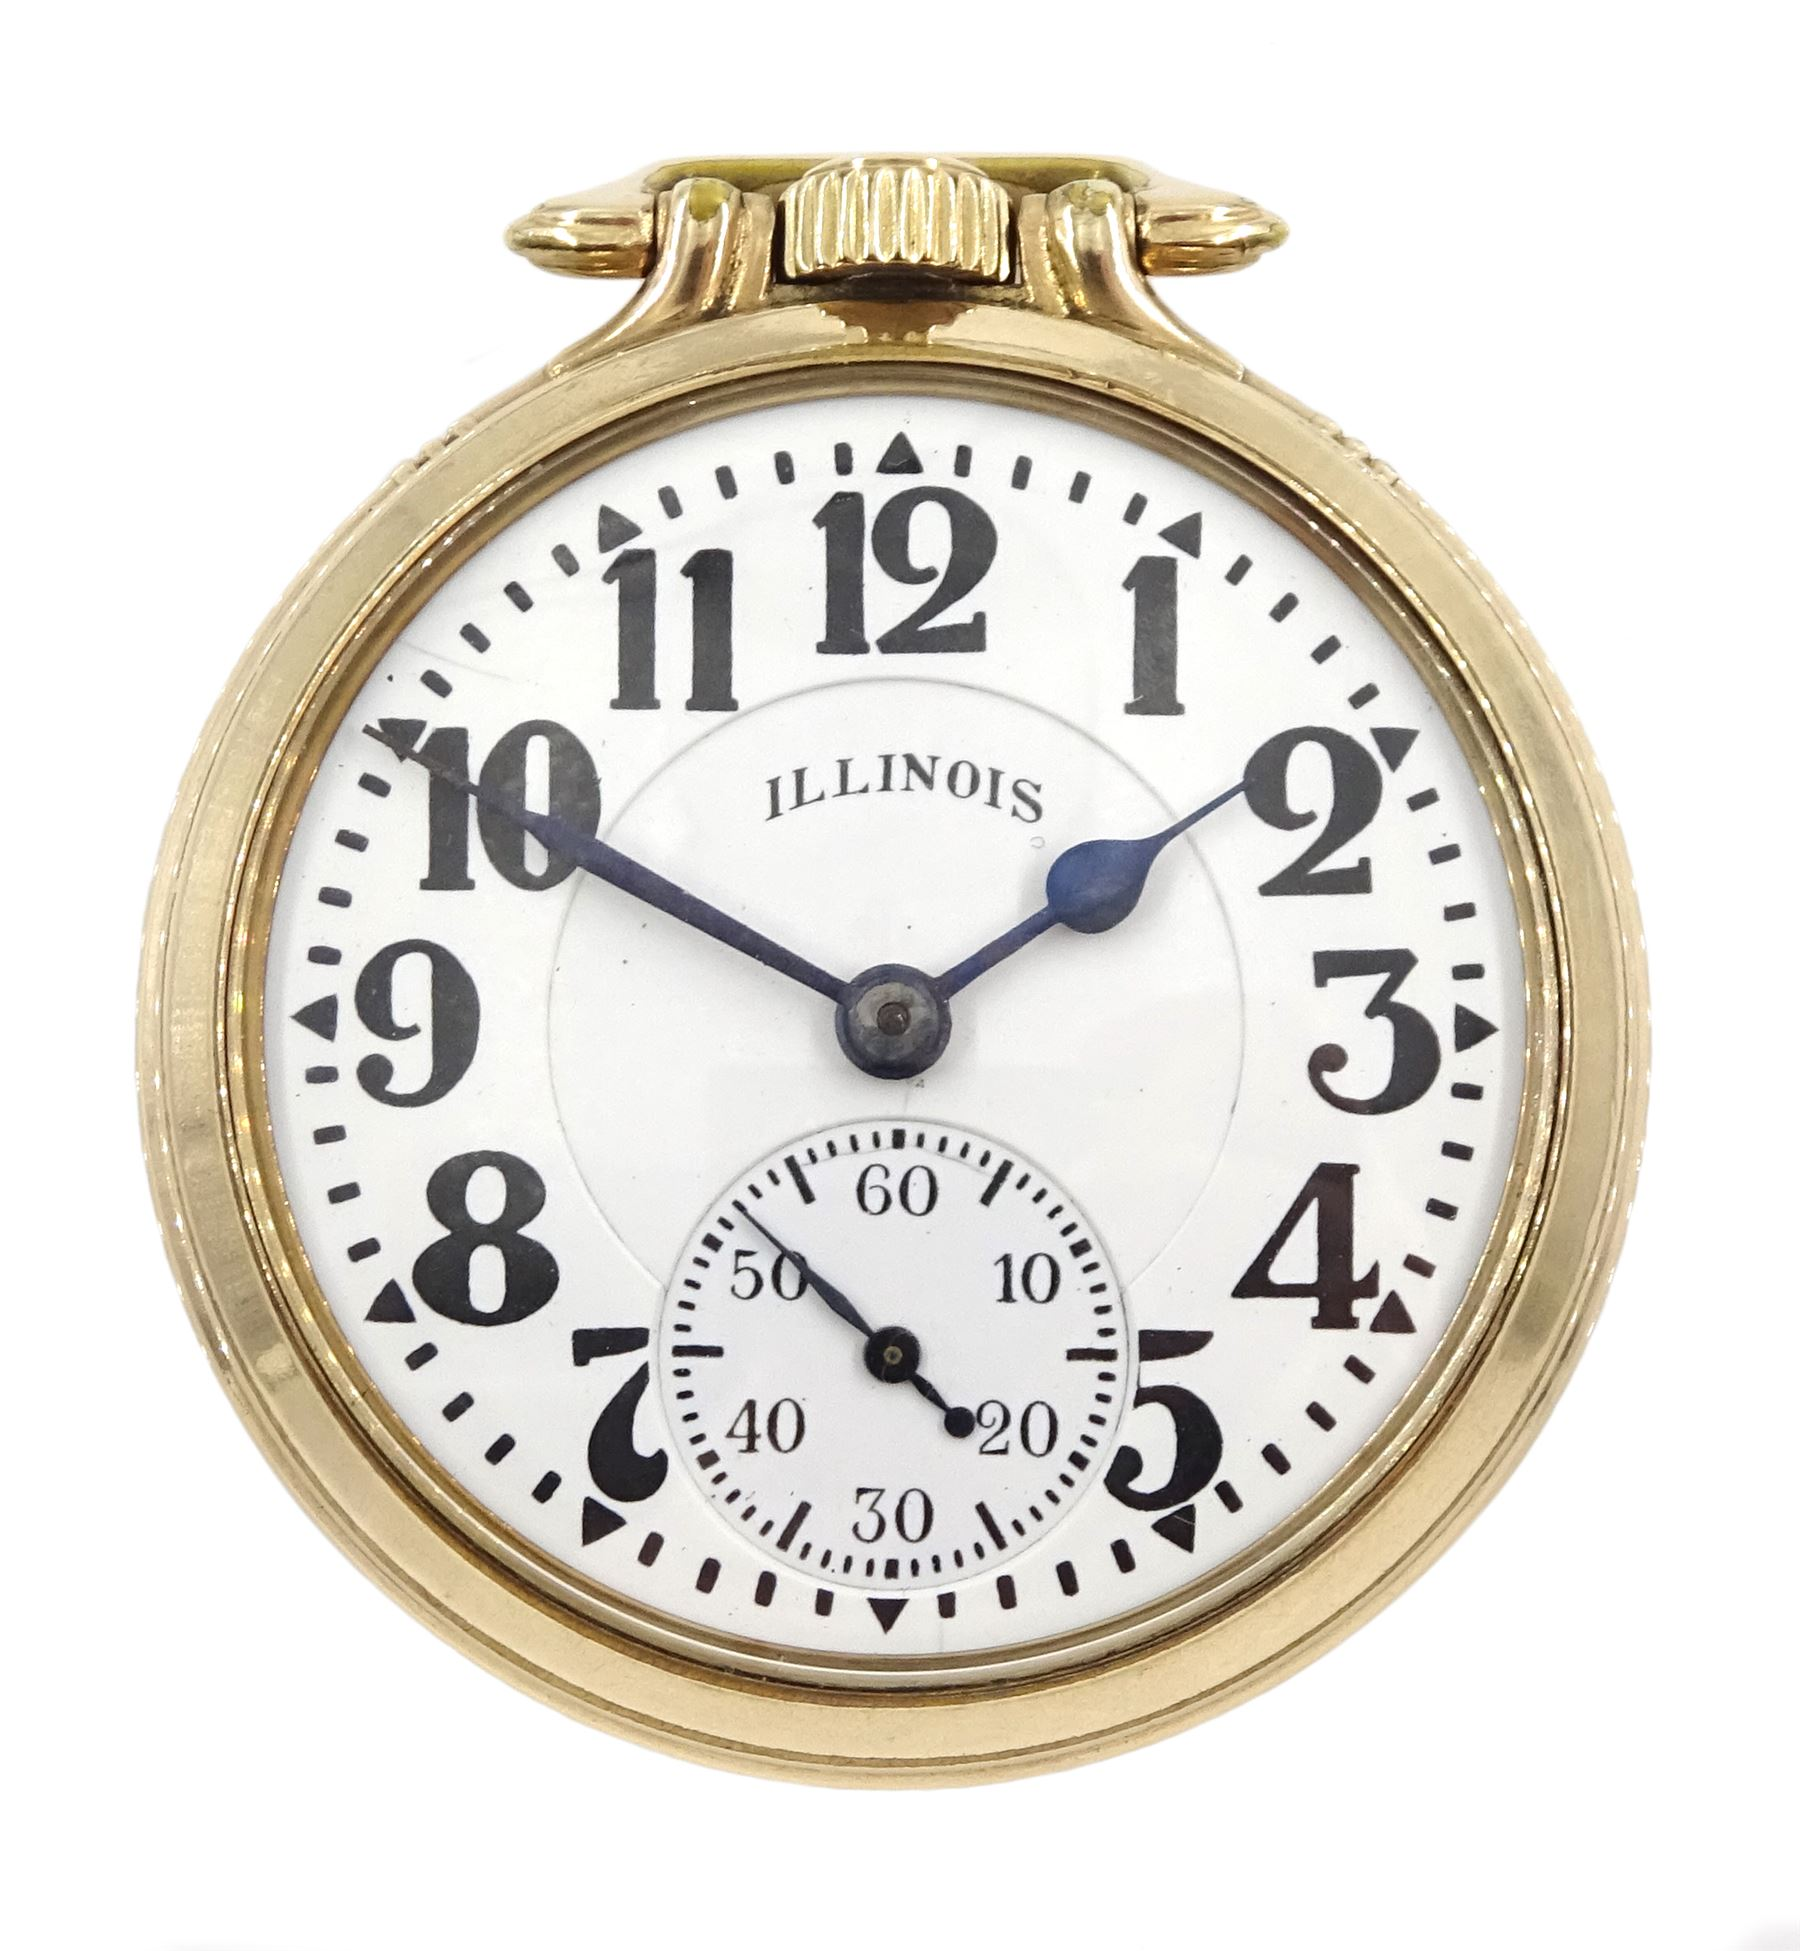 Illinois Watch Company gold-plated open face Elinvar 'Bunn Special' 161A, keyless 21 jewels motor ba